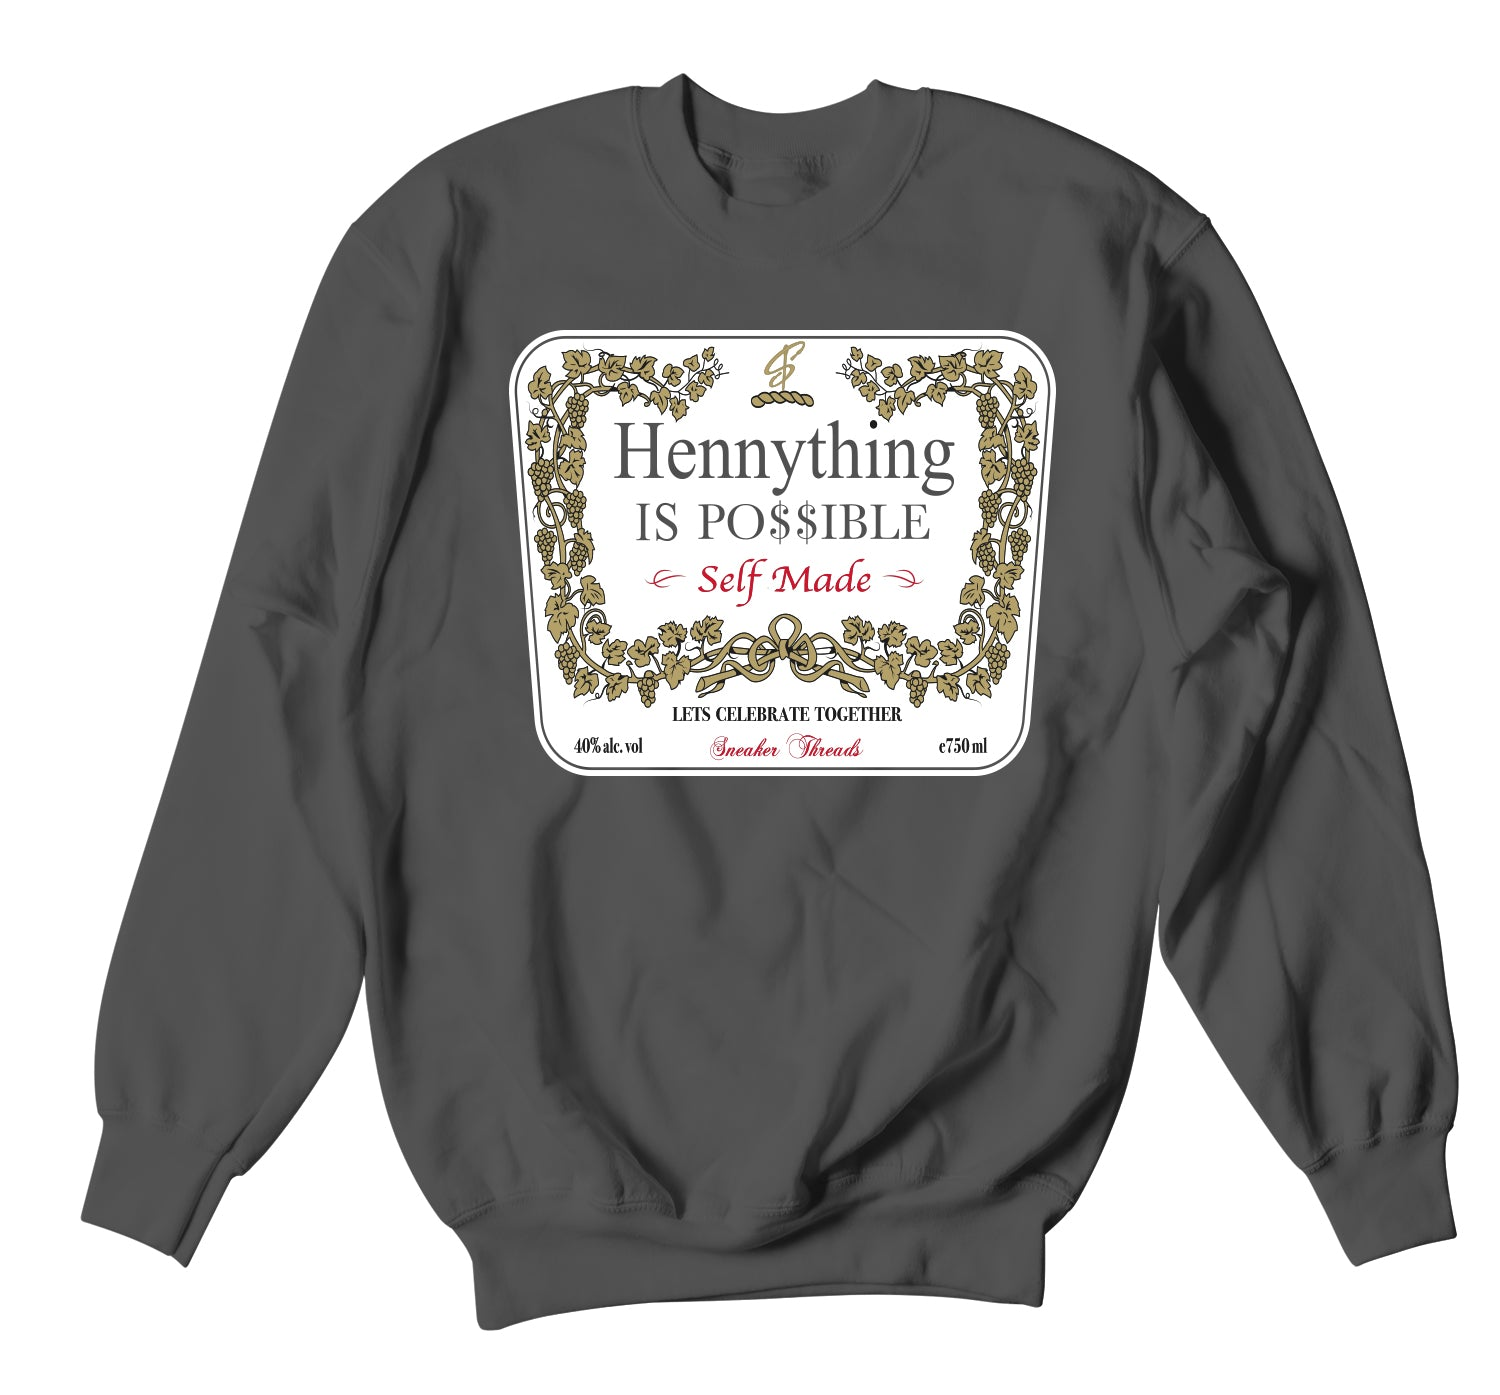 Jordan 12 Dark Grey Hennything Sweater